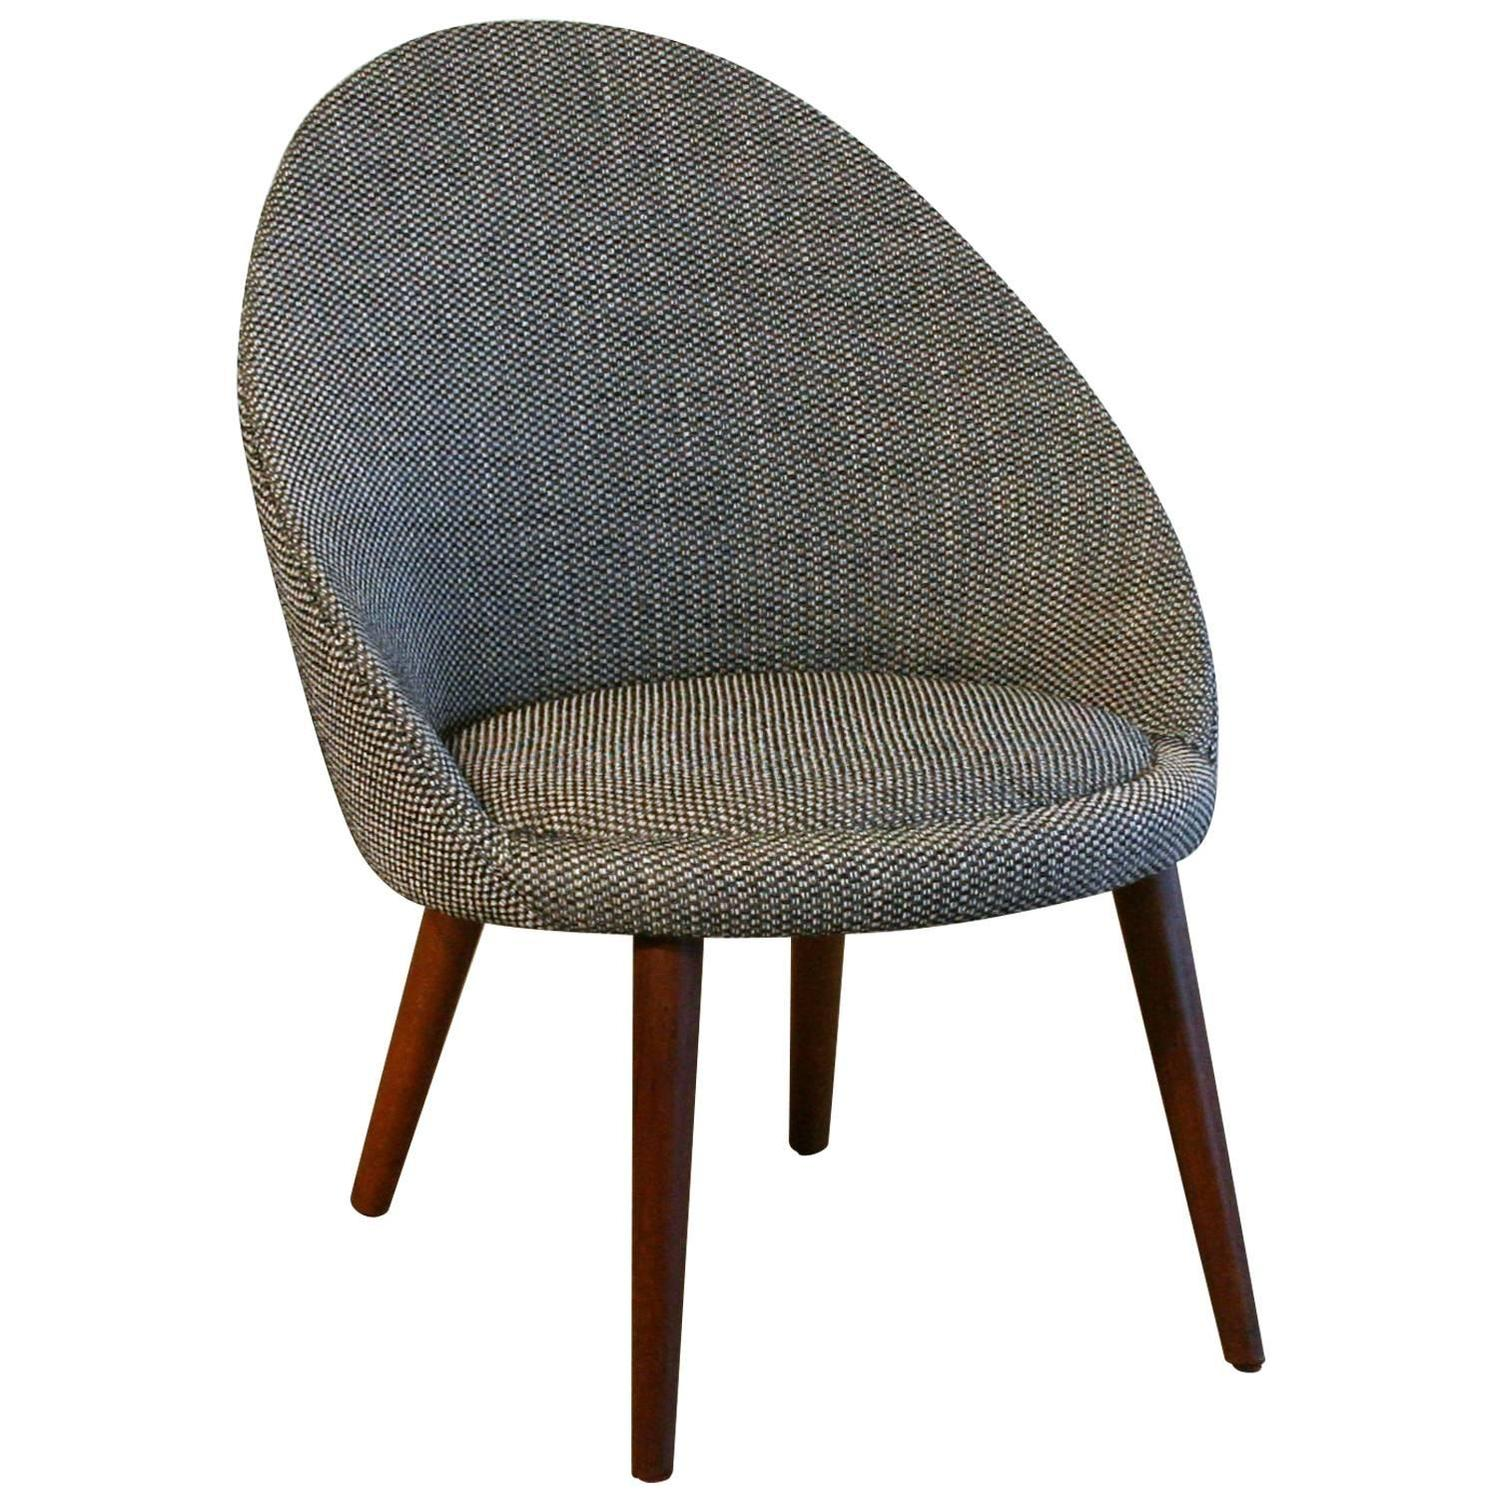 Vintage Accent Chair Vintage Danish Accent Chair At 1stdibs